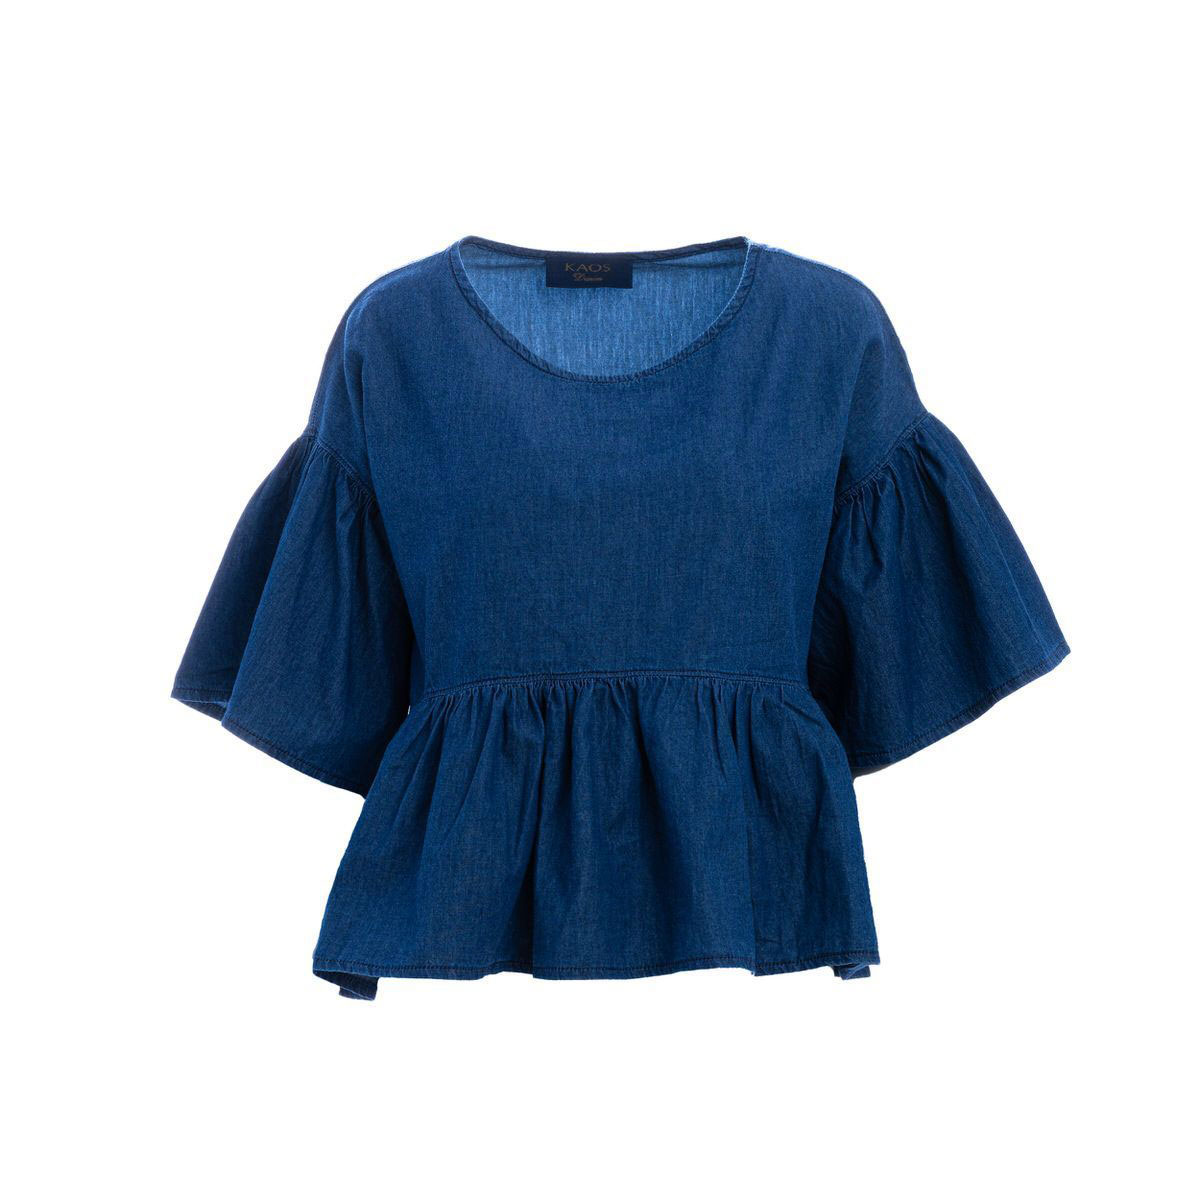 Blusa Donna kaos Denim In Cotone Blu